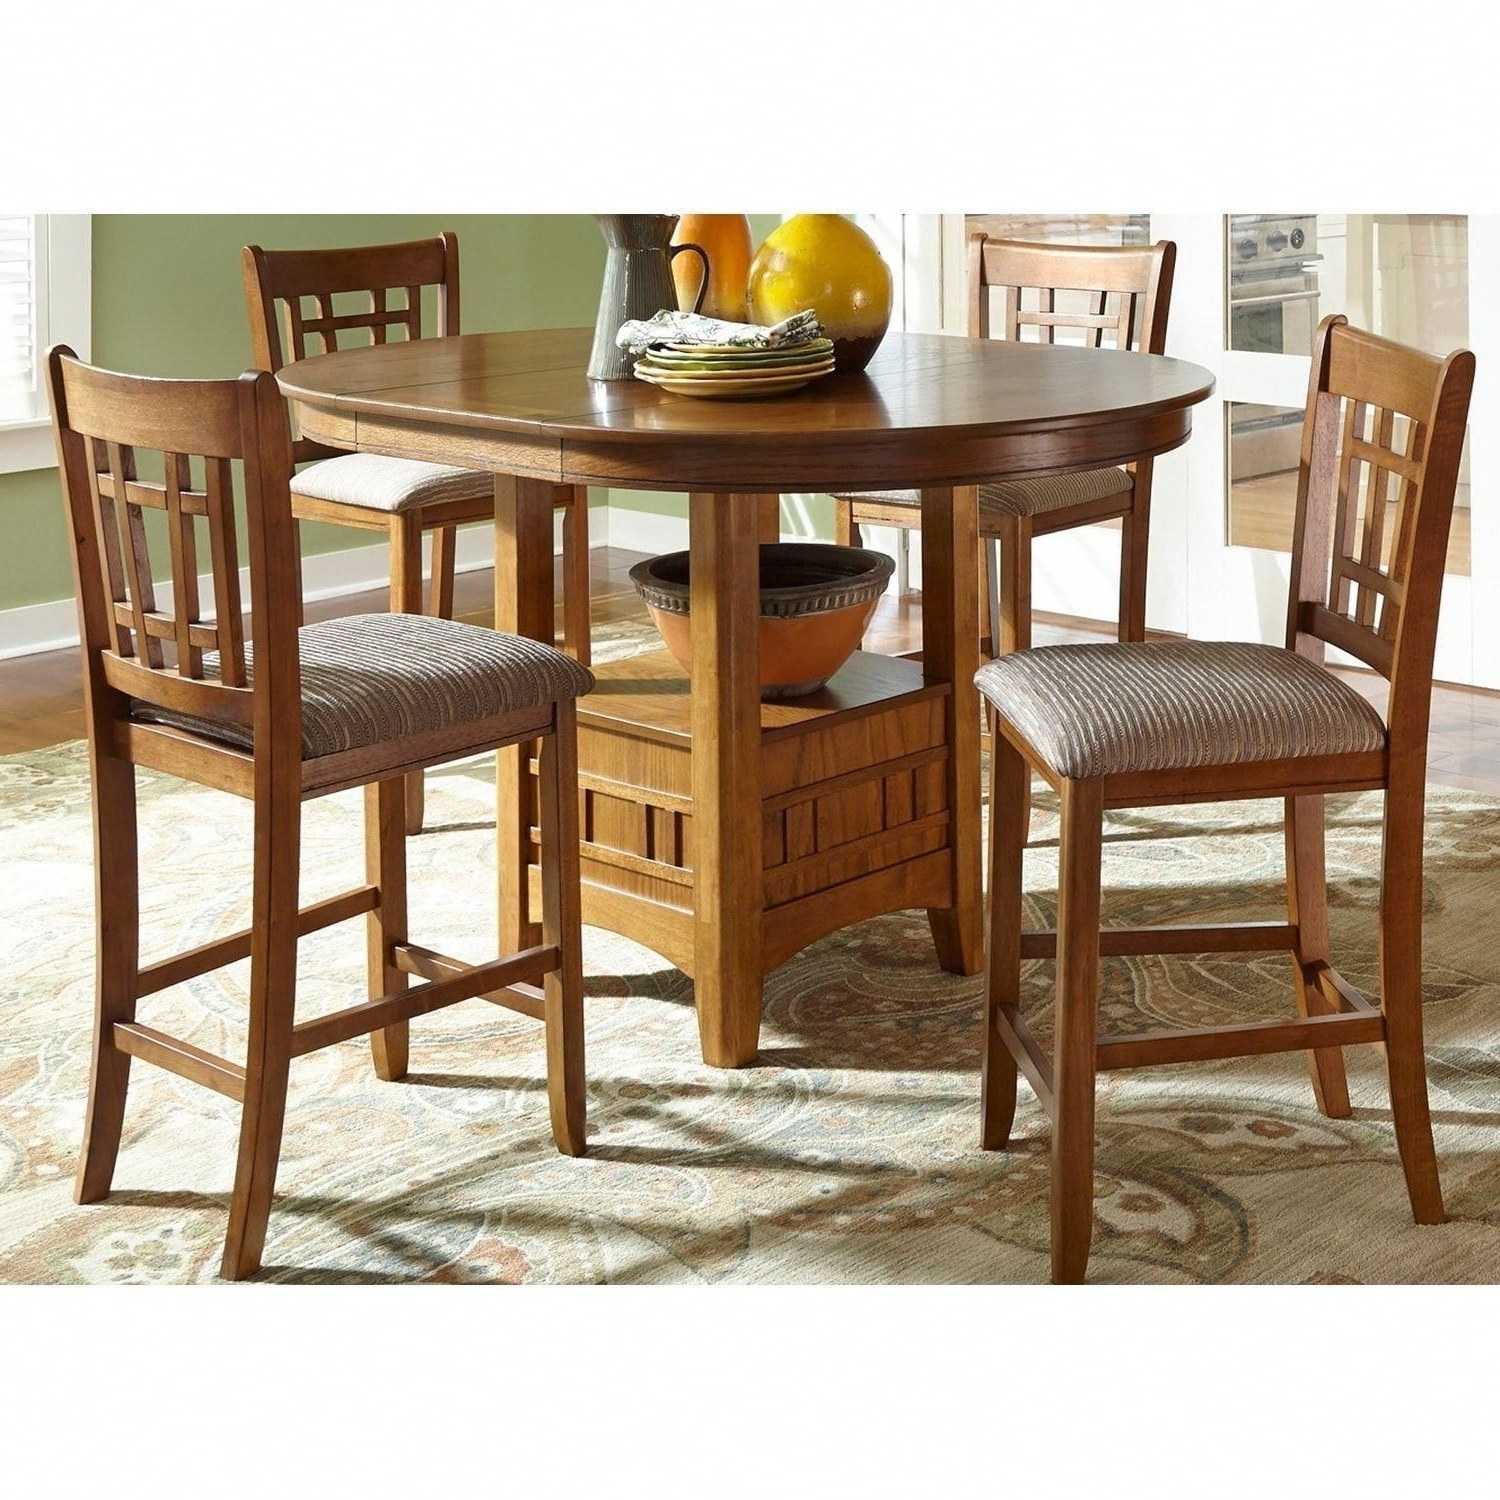 Liberty Santa Rosa Mission Oak Wood 5 Piece Counter Height Pub Set Within Newest Craftsman 5 Piece Round Dining Sets With Side Chairs (View 15 of 25)